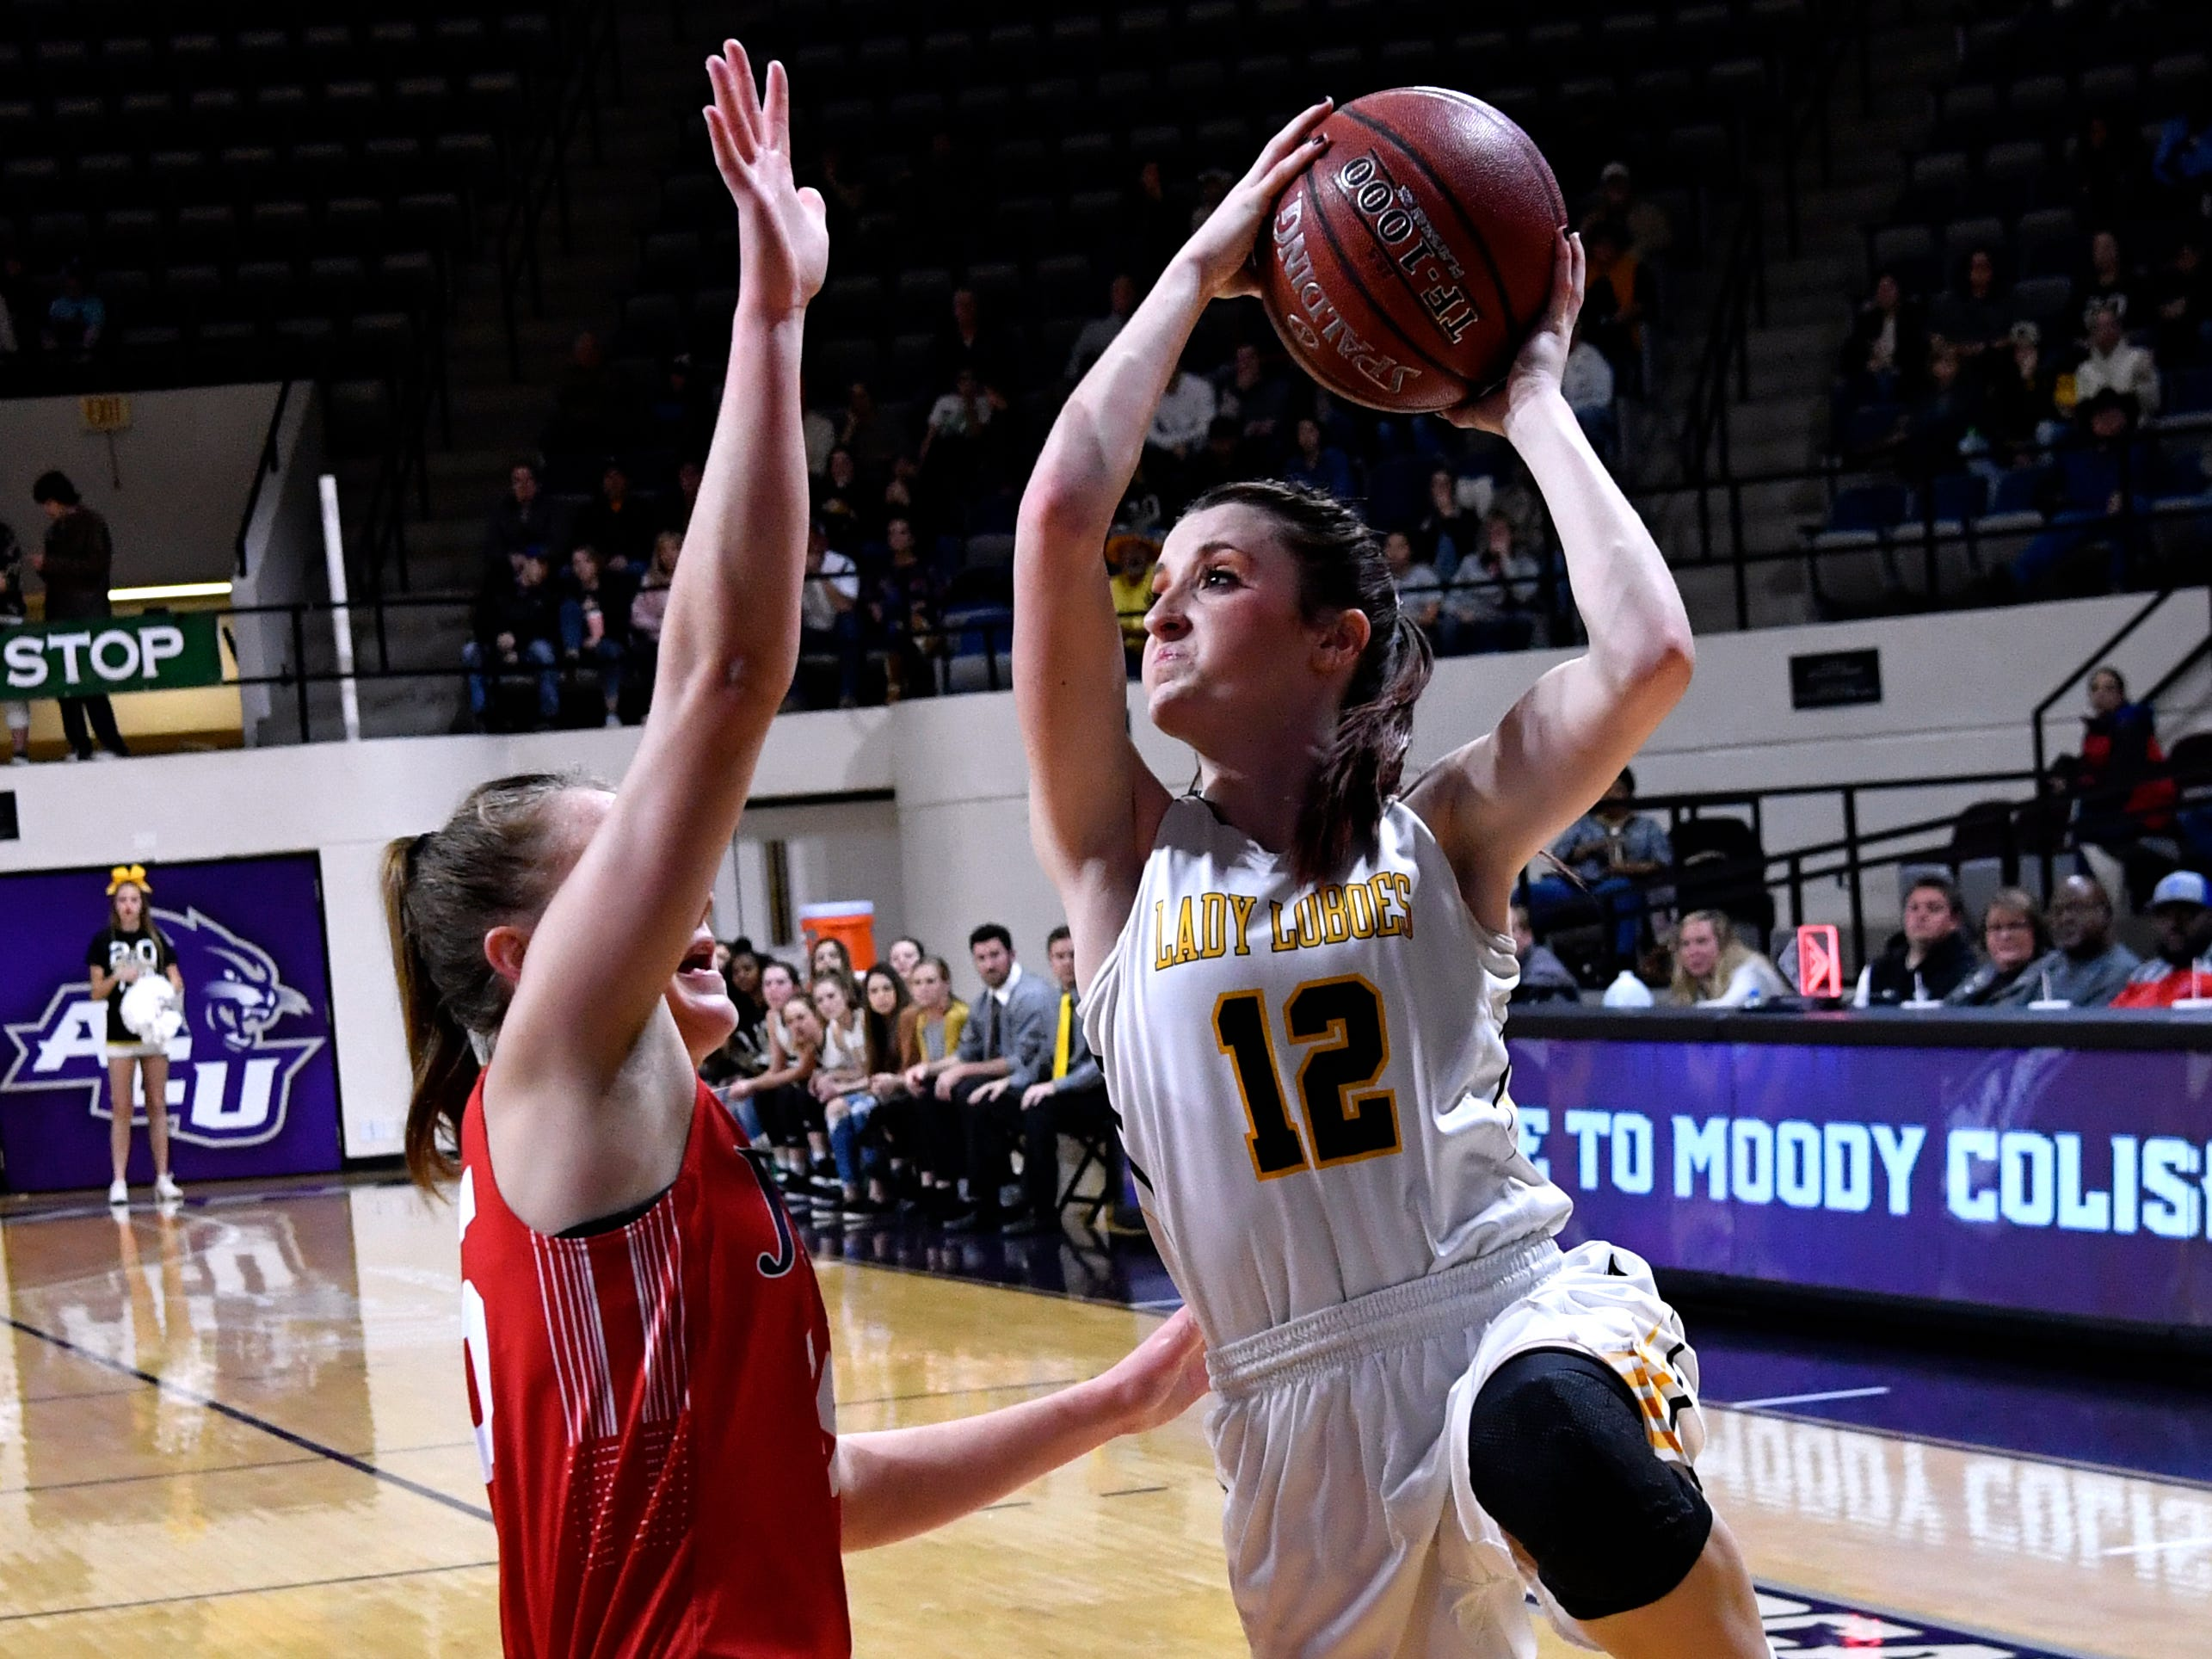 Cisco's Katelyn Bird tries for a basket during Tuesday's Region 1 3A basketball all quarter-finals at Abilene Christian University Feb. 19, 2019. Final score was 46-31, Jim Ned.